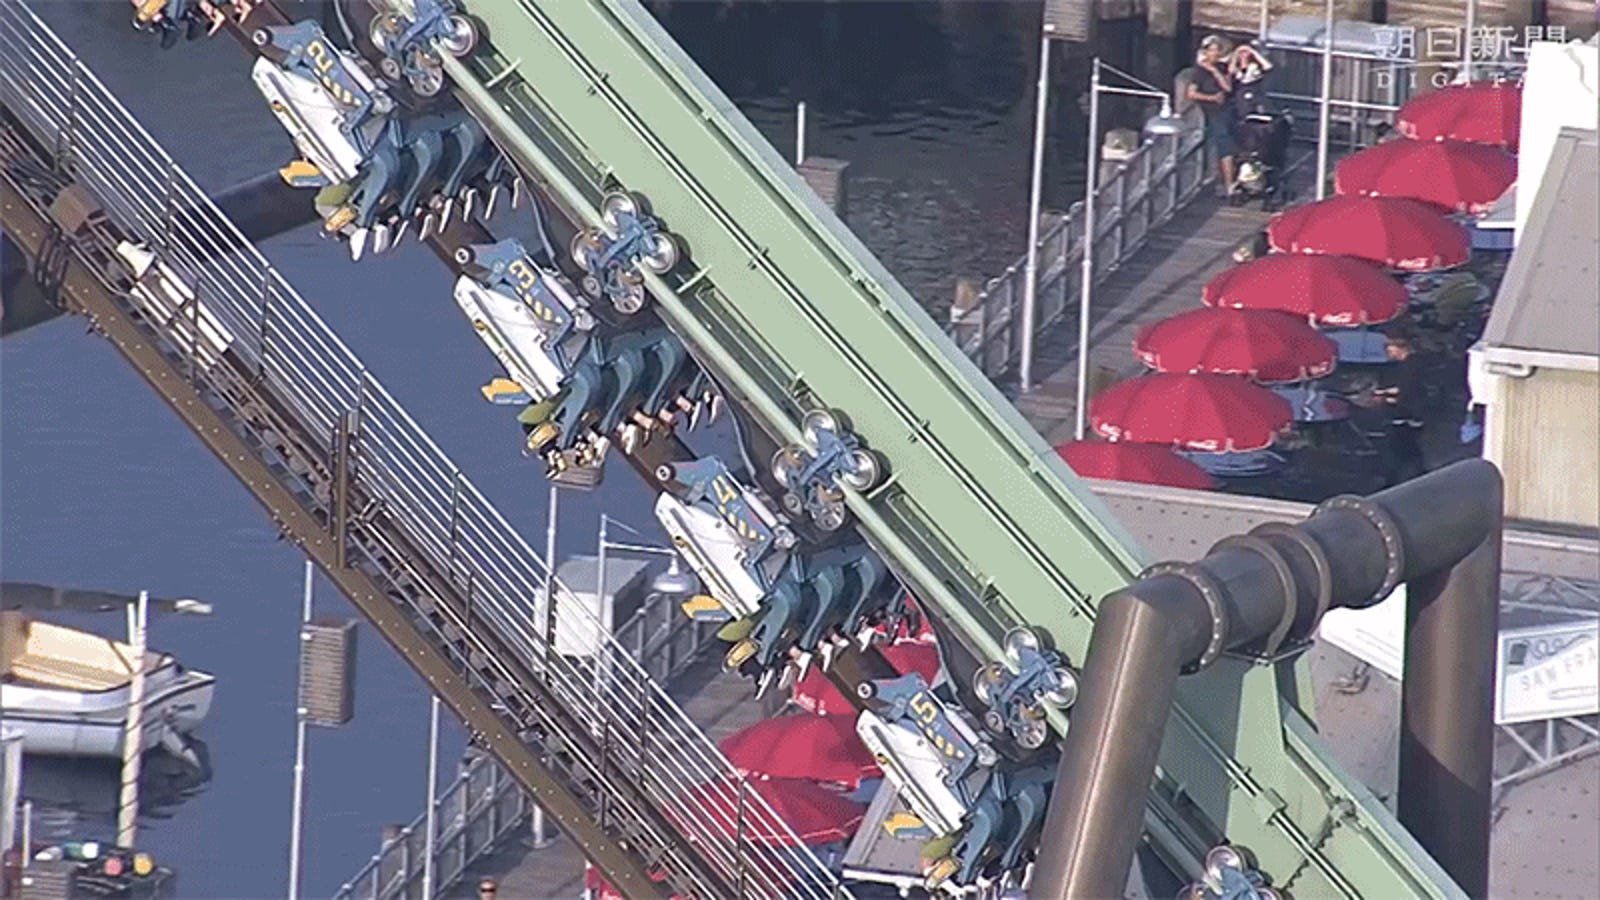 Riders Spent Two Hours Trapped On This Hanging Roller